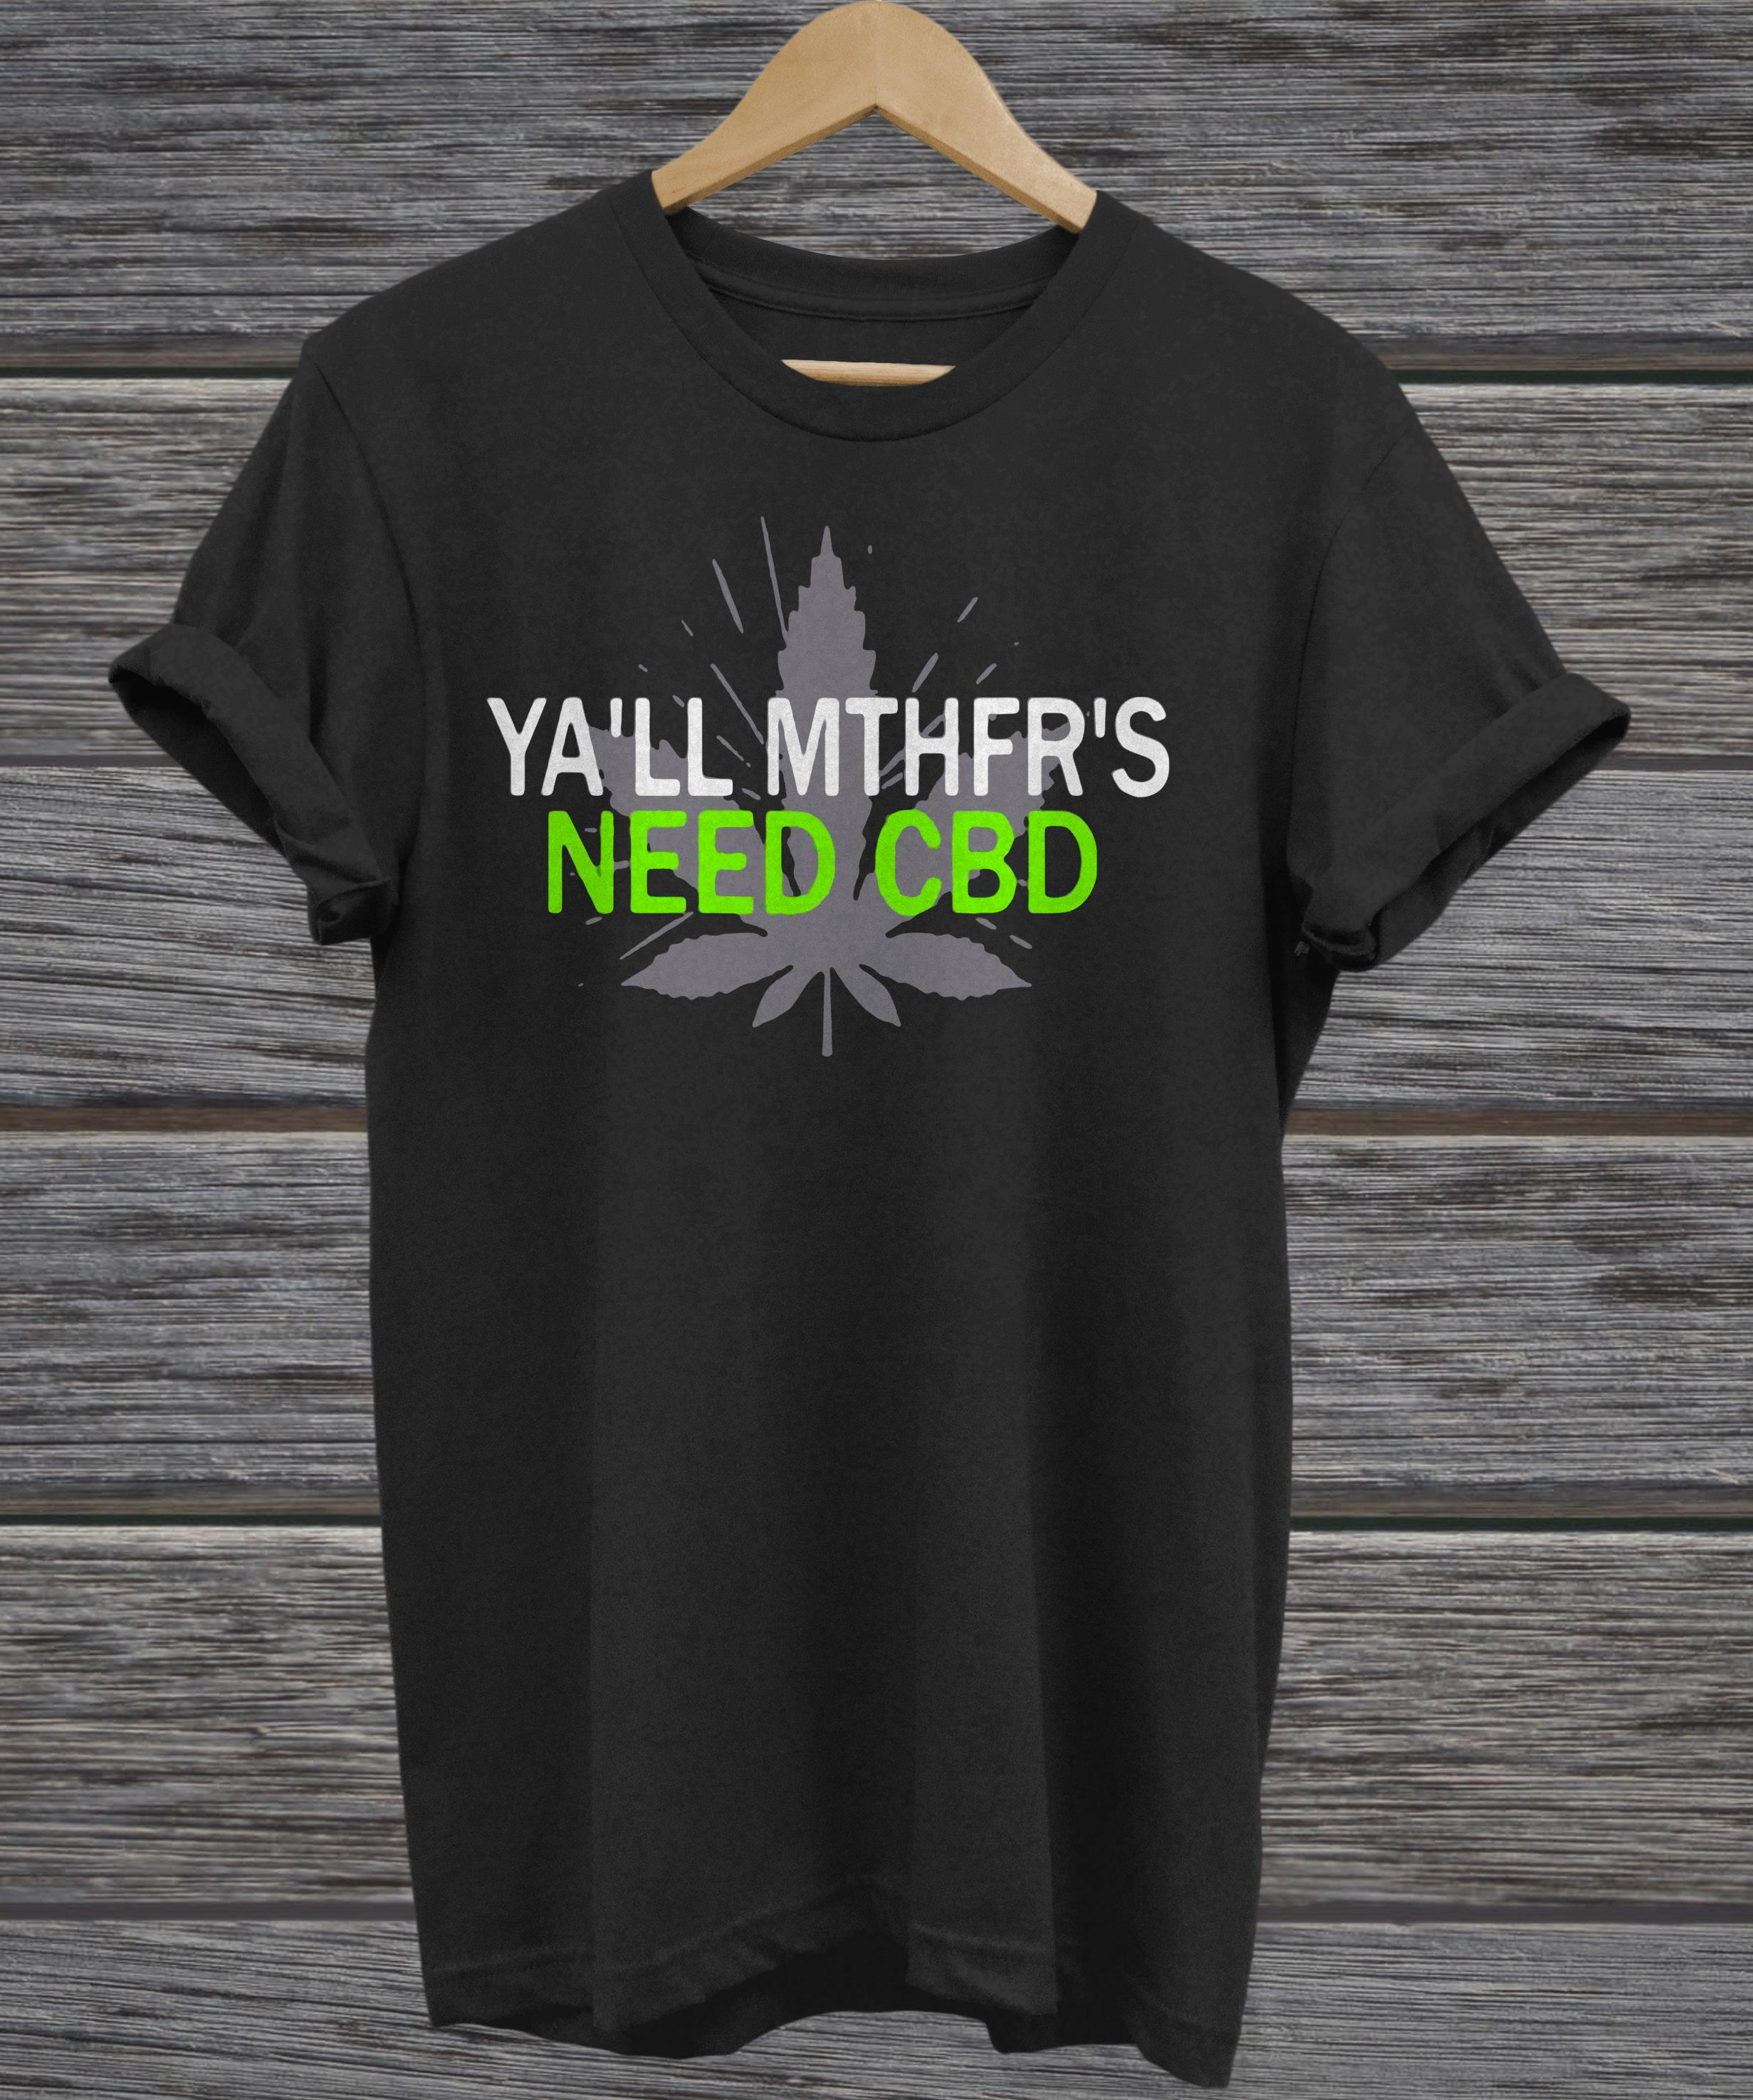 Ya'll MTHFR'S need CBD tank top